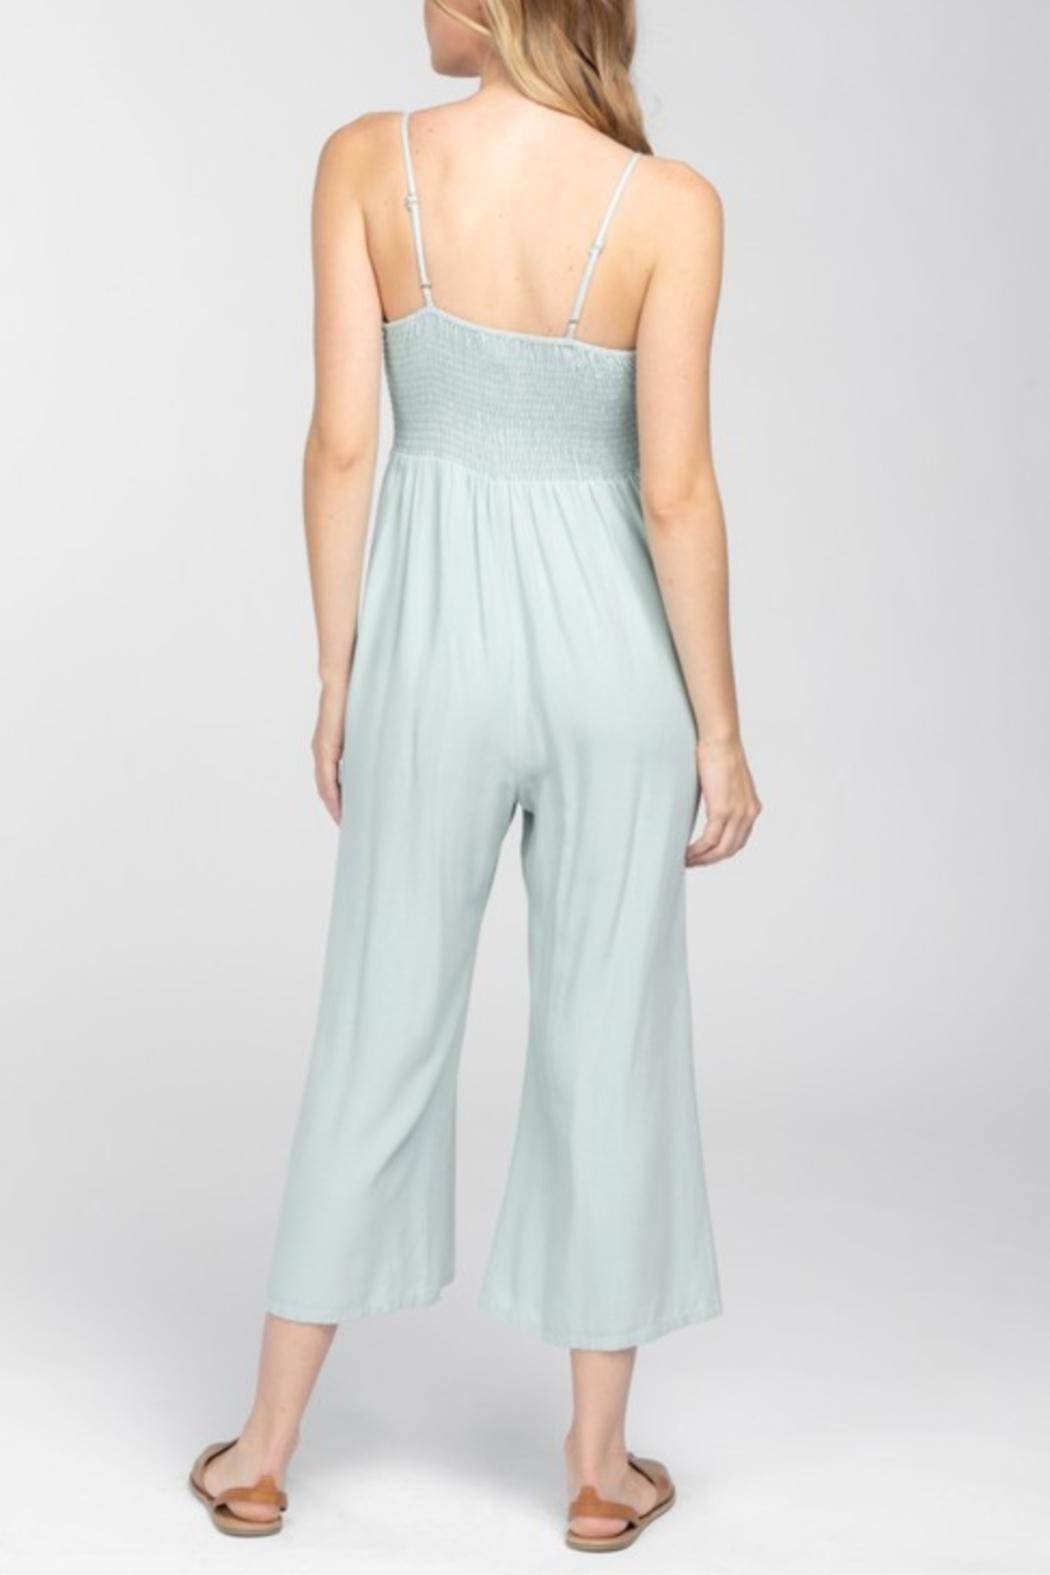 Everly Front Tie Jumpsuit - Front Full Image